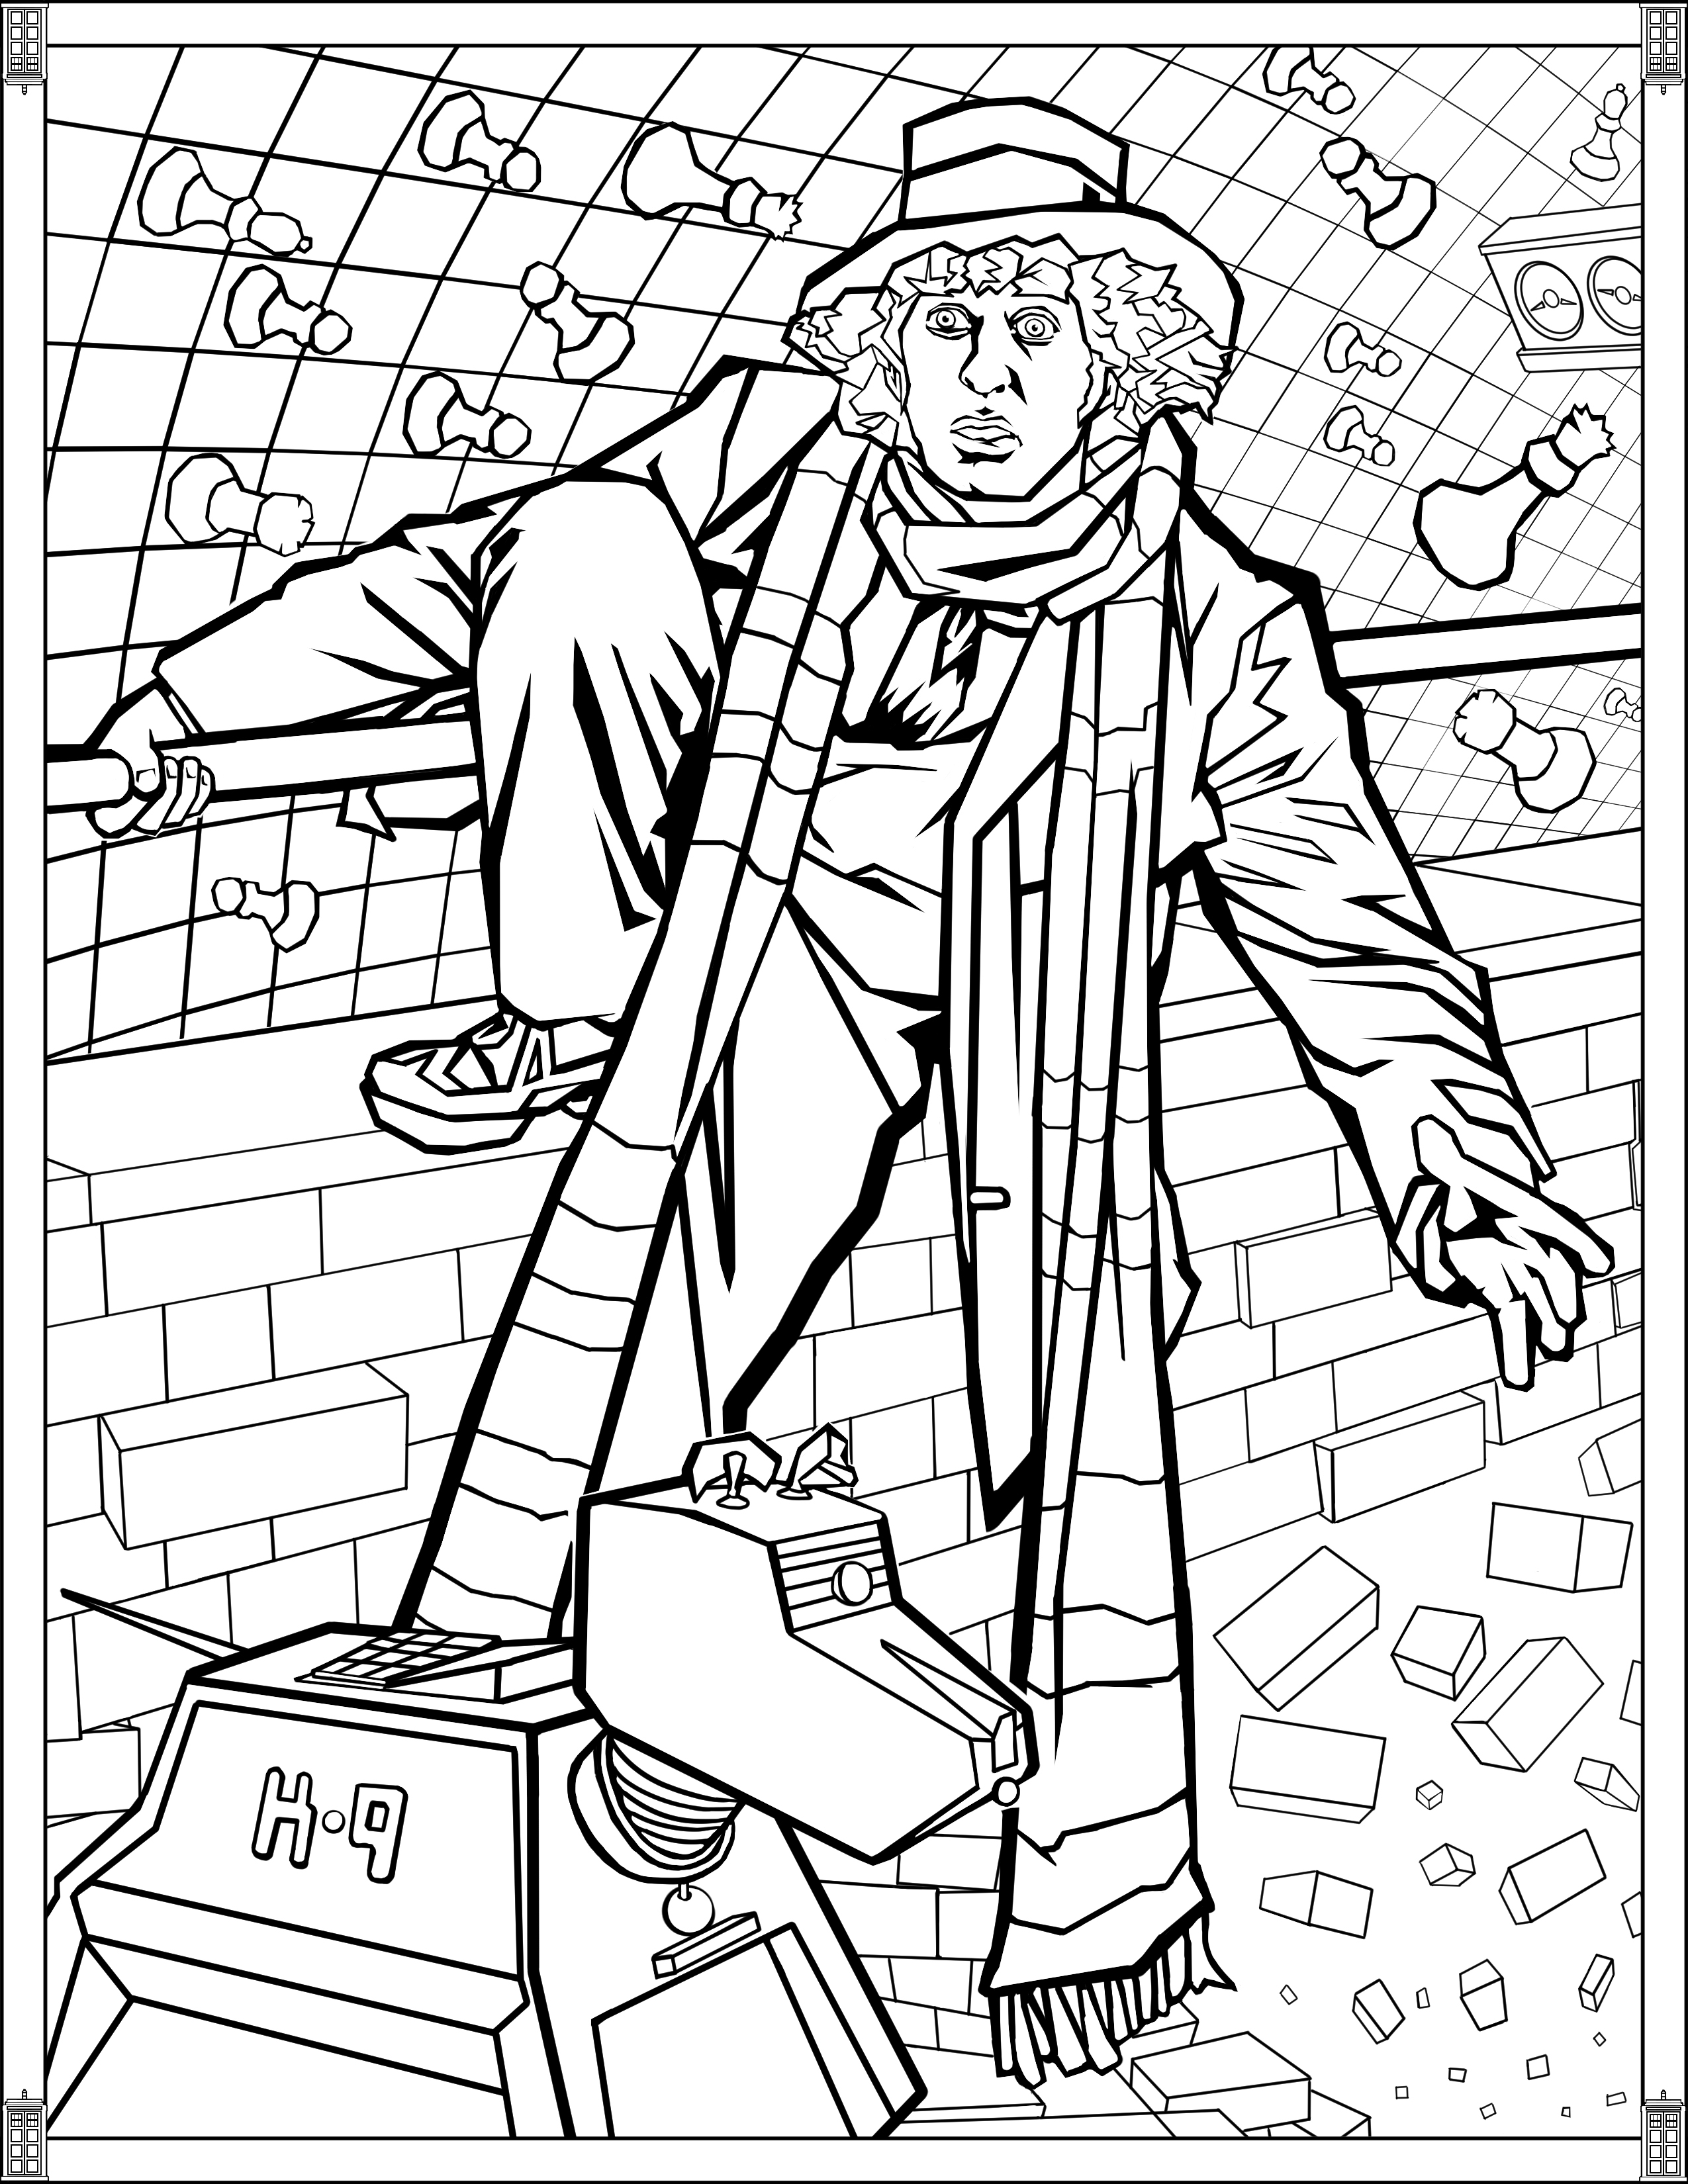 doctor who pictures to colour doctor who coloring pages best coloring pages for kids to colour who doctor pictures